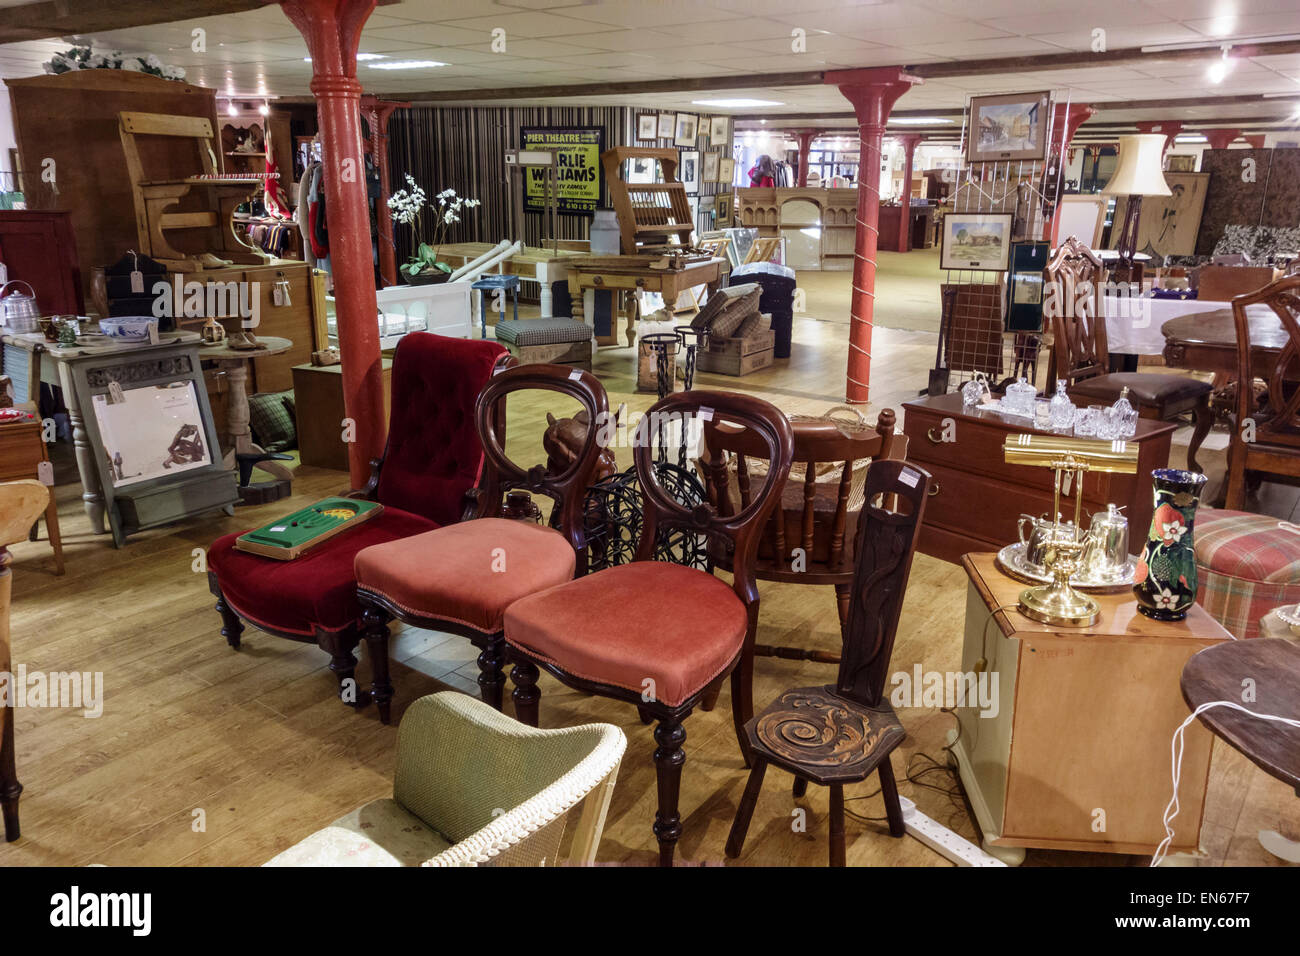 Secondhand Furniture Shop In Stroud Gloucestershire Uk Stock Photo